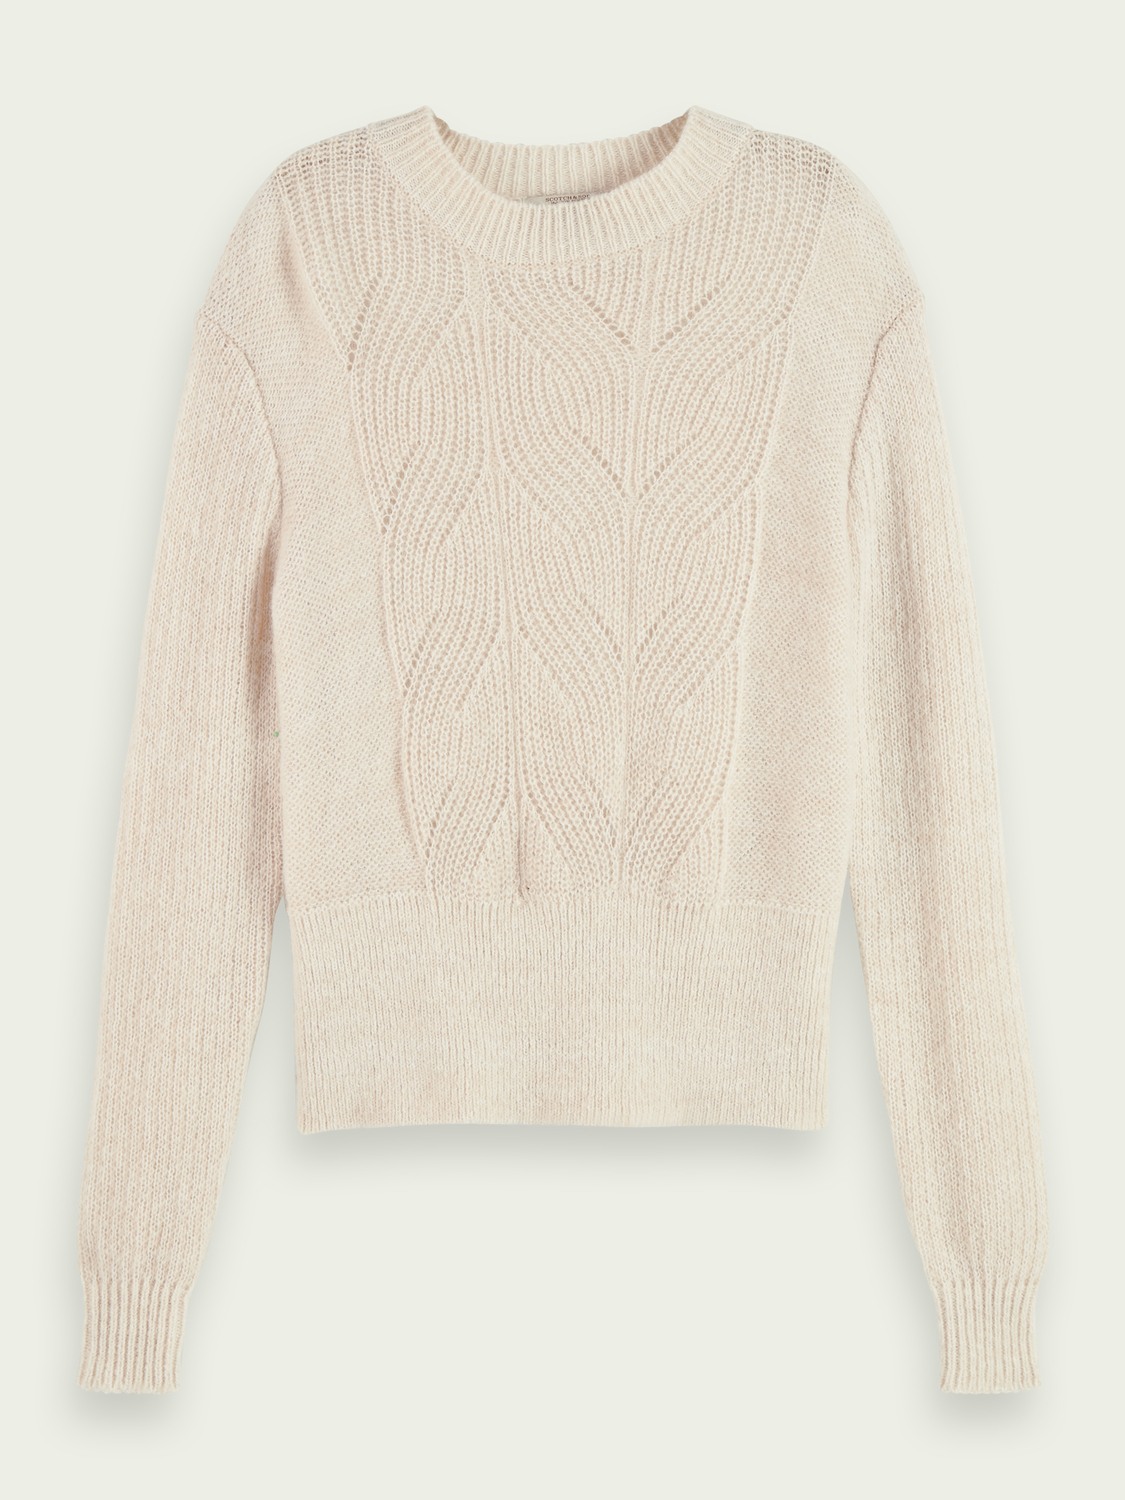 Wool-Alpaca blend cable knit pullover